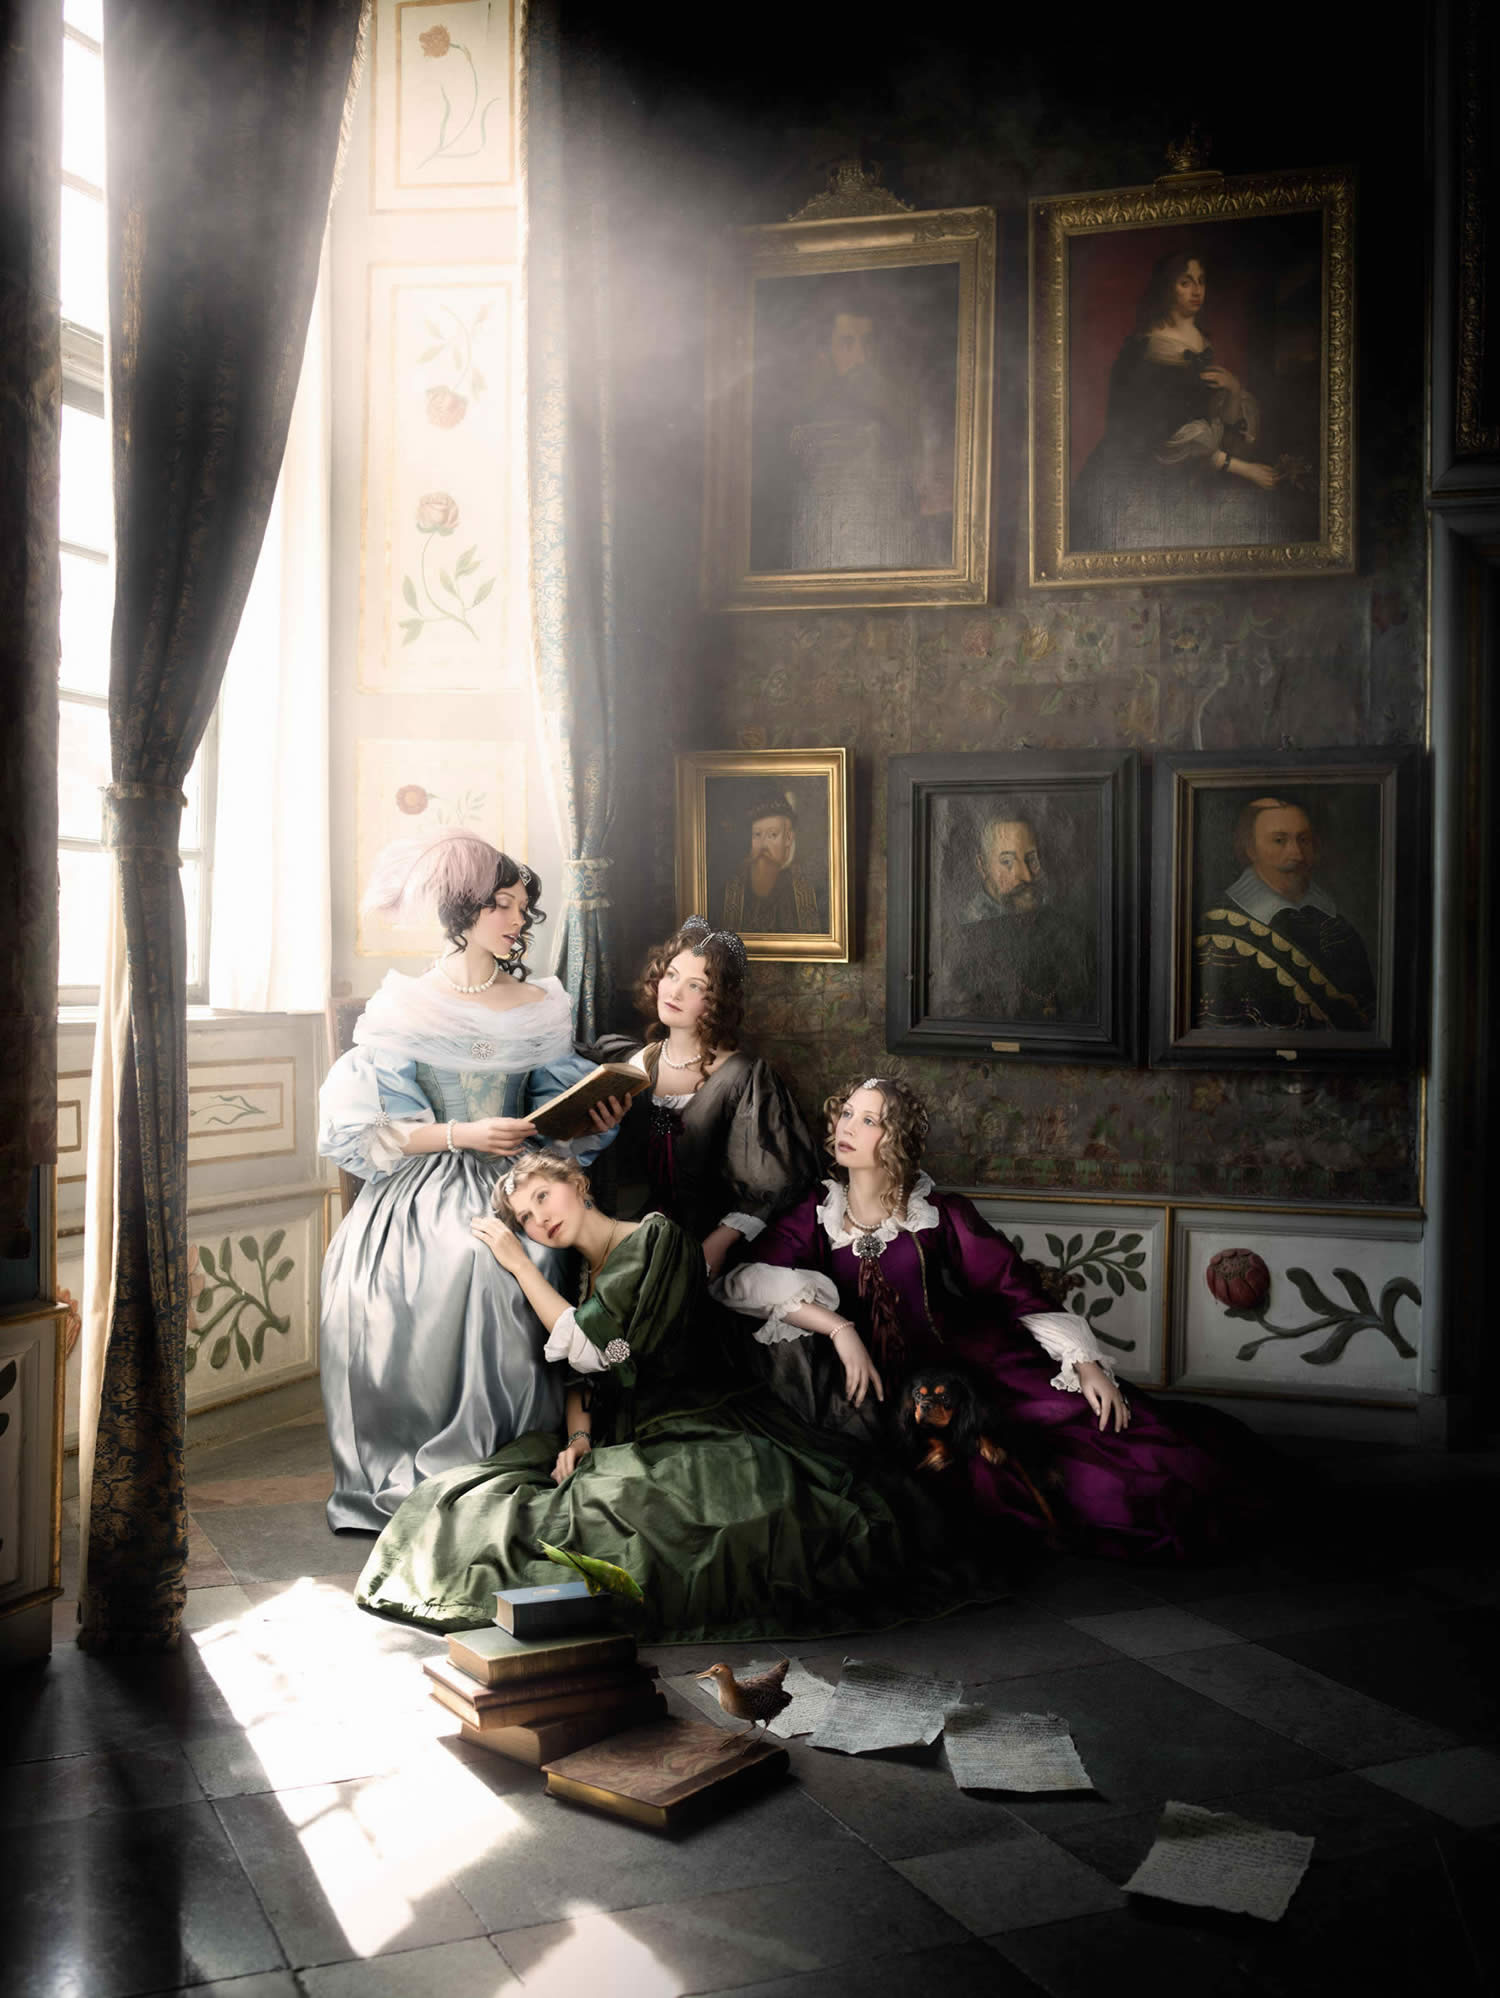 three women sitting baroque era, alexia sinclair